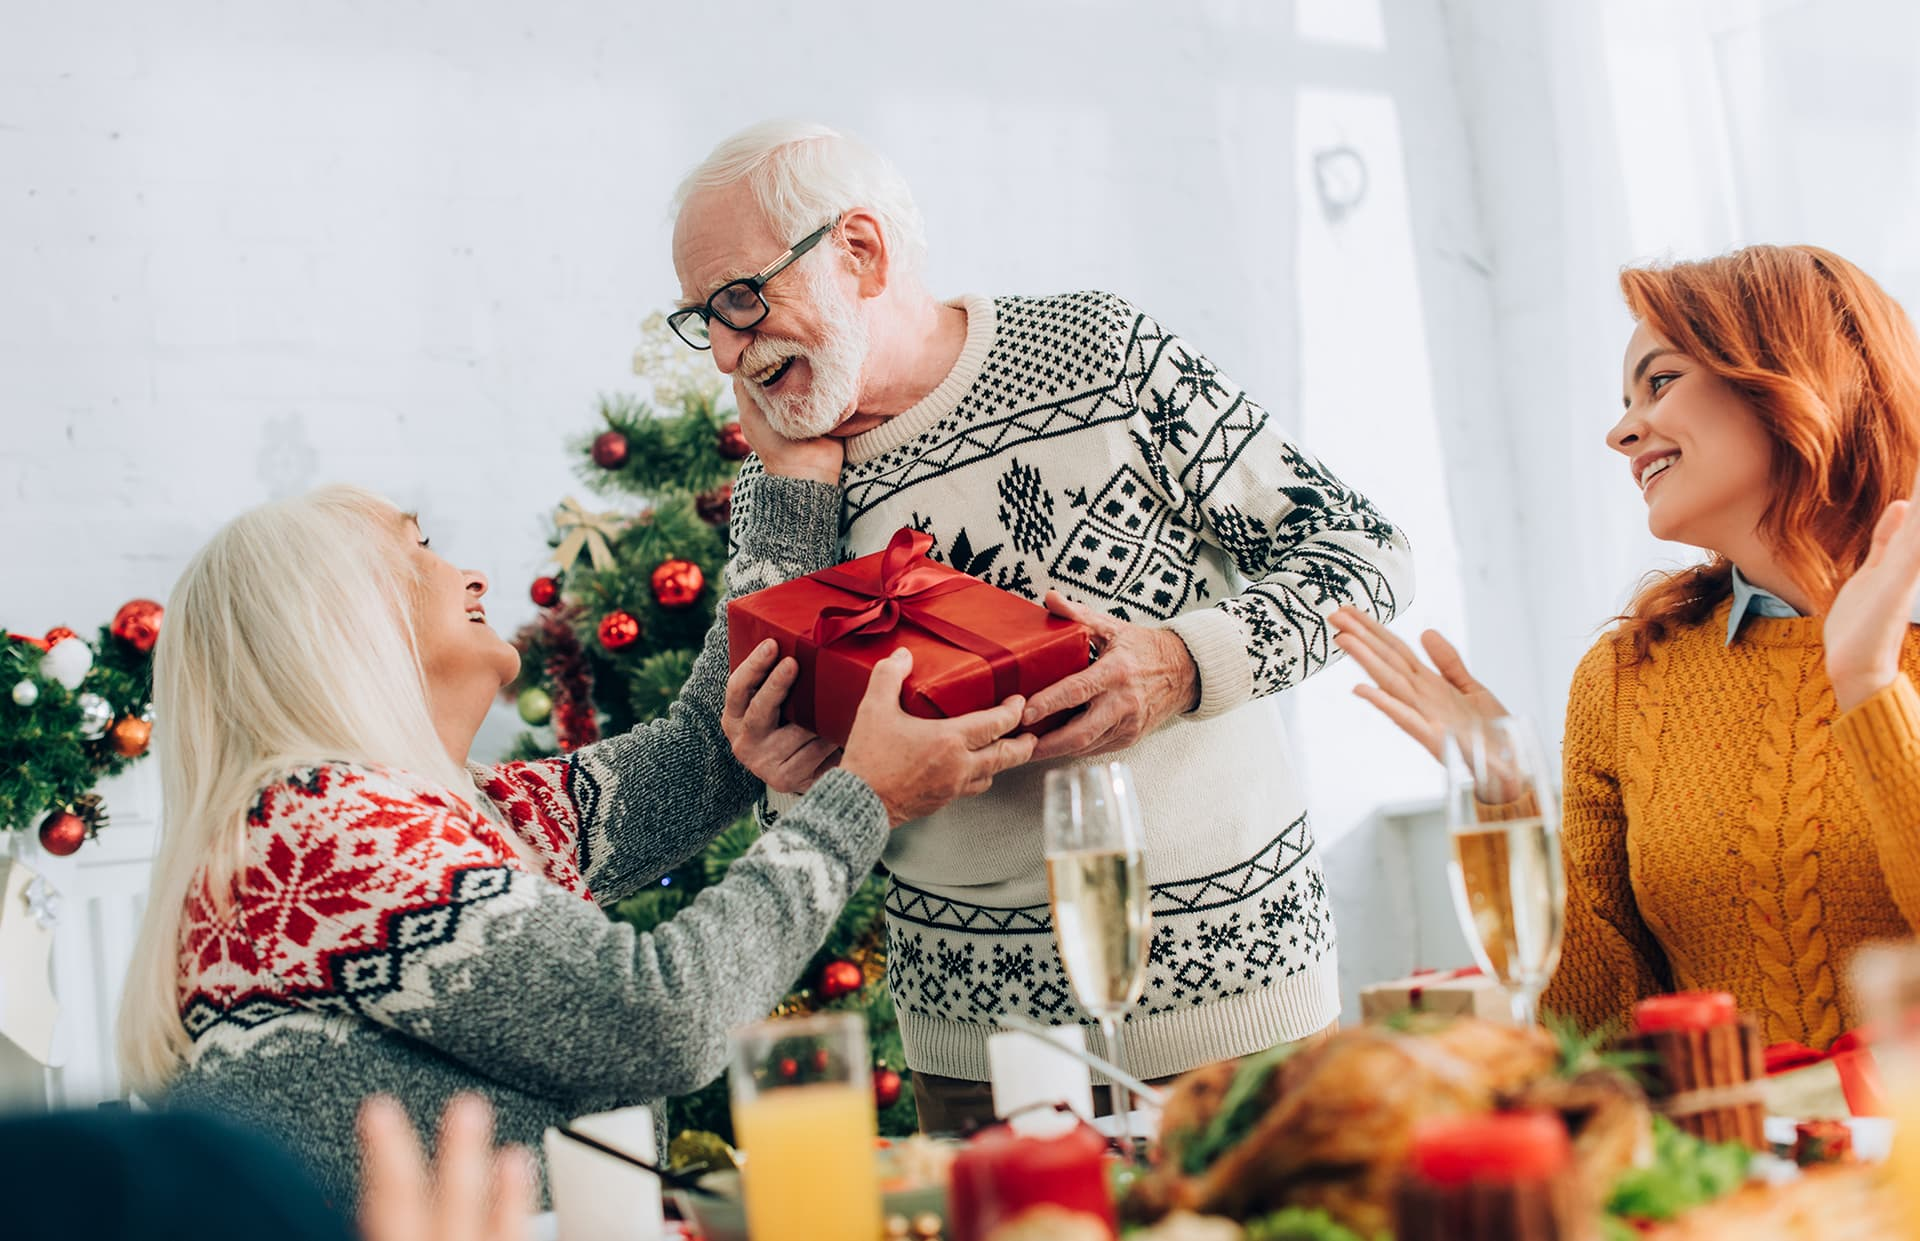 Feeling anxious and depressed approaching the holidays? Davis Health System says you're not alone